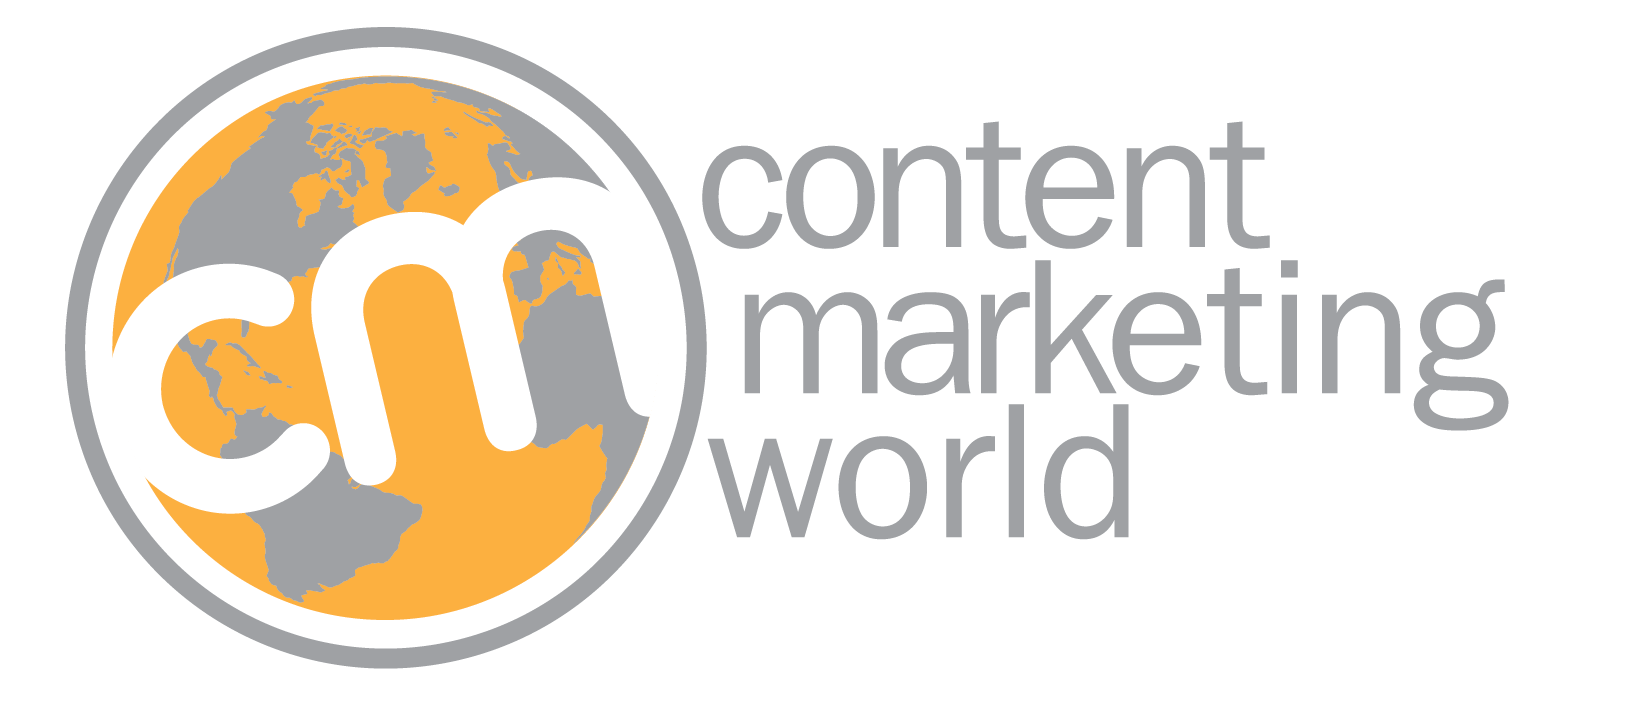 Content Marketing World - 2018 Marketing Event, Conference